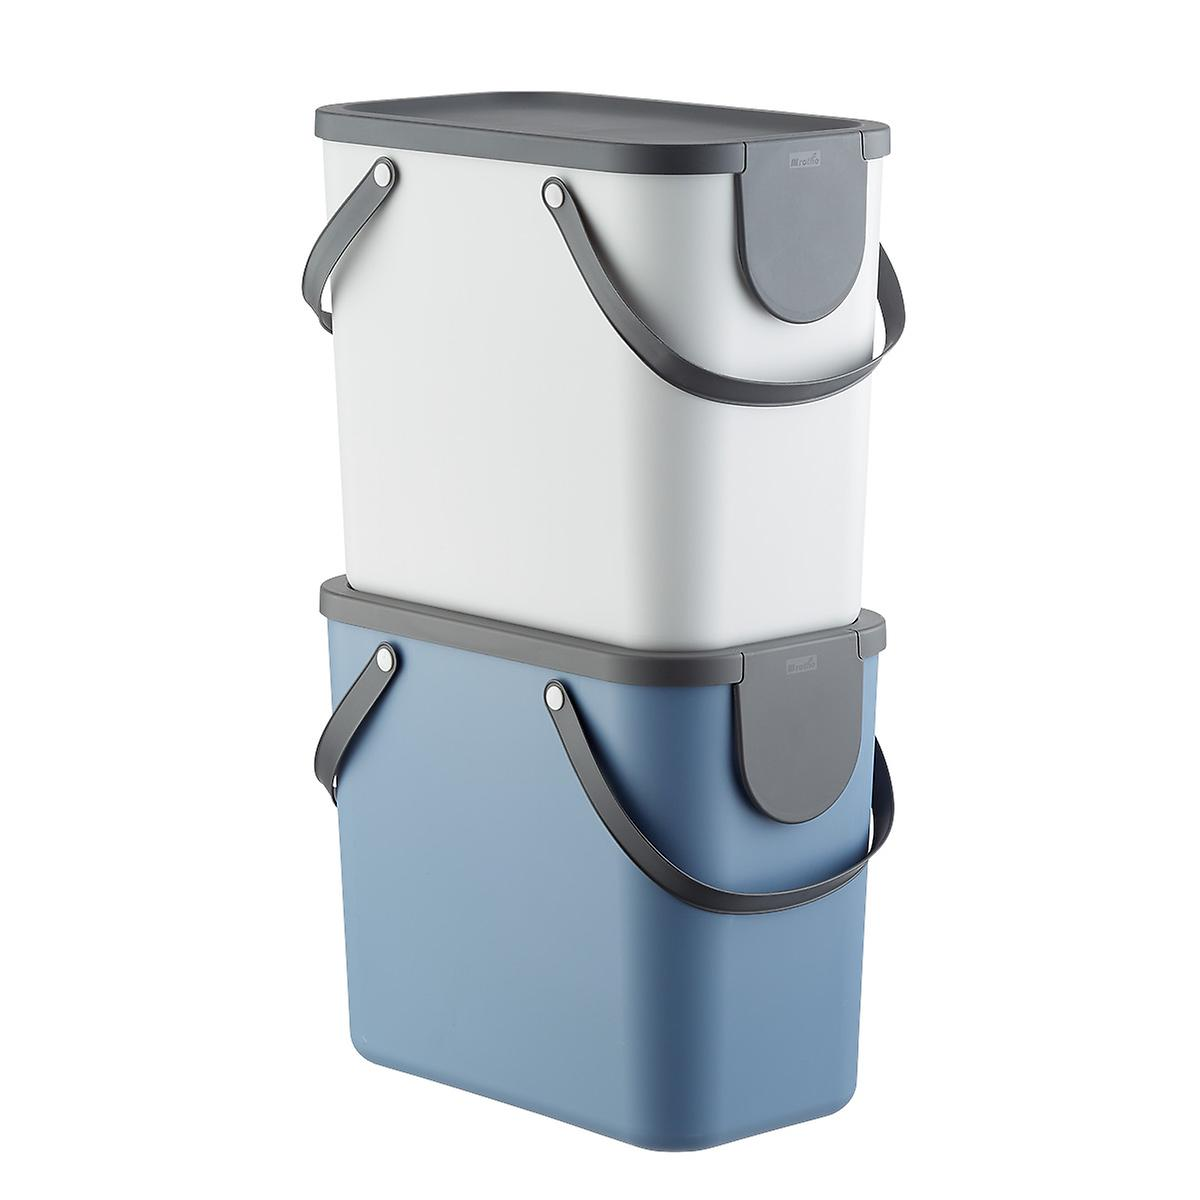 Stacking 6.6 gal. Recycling Bin with Lid